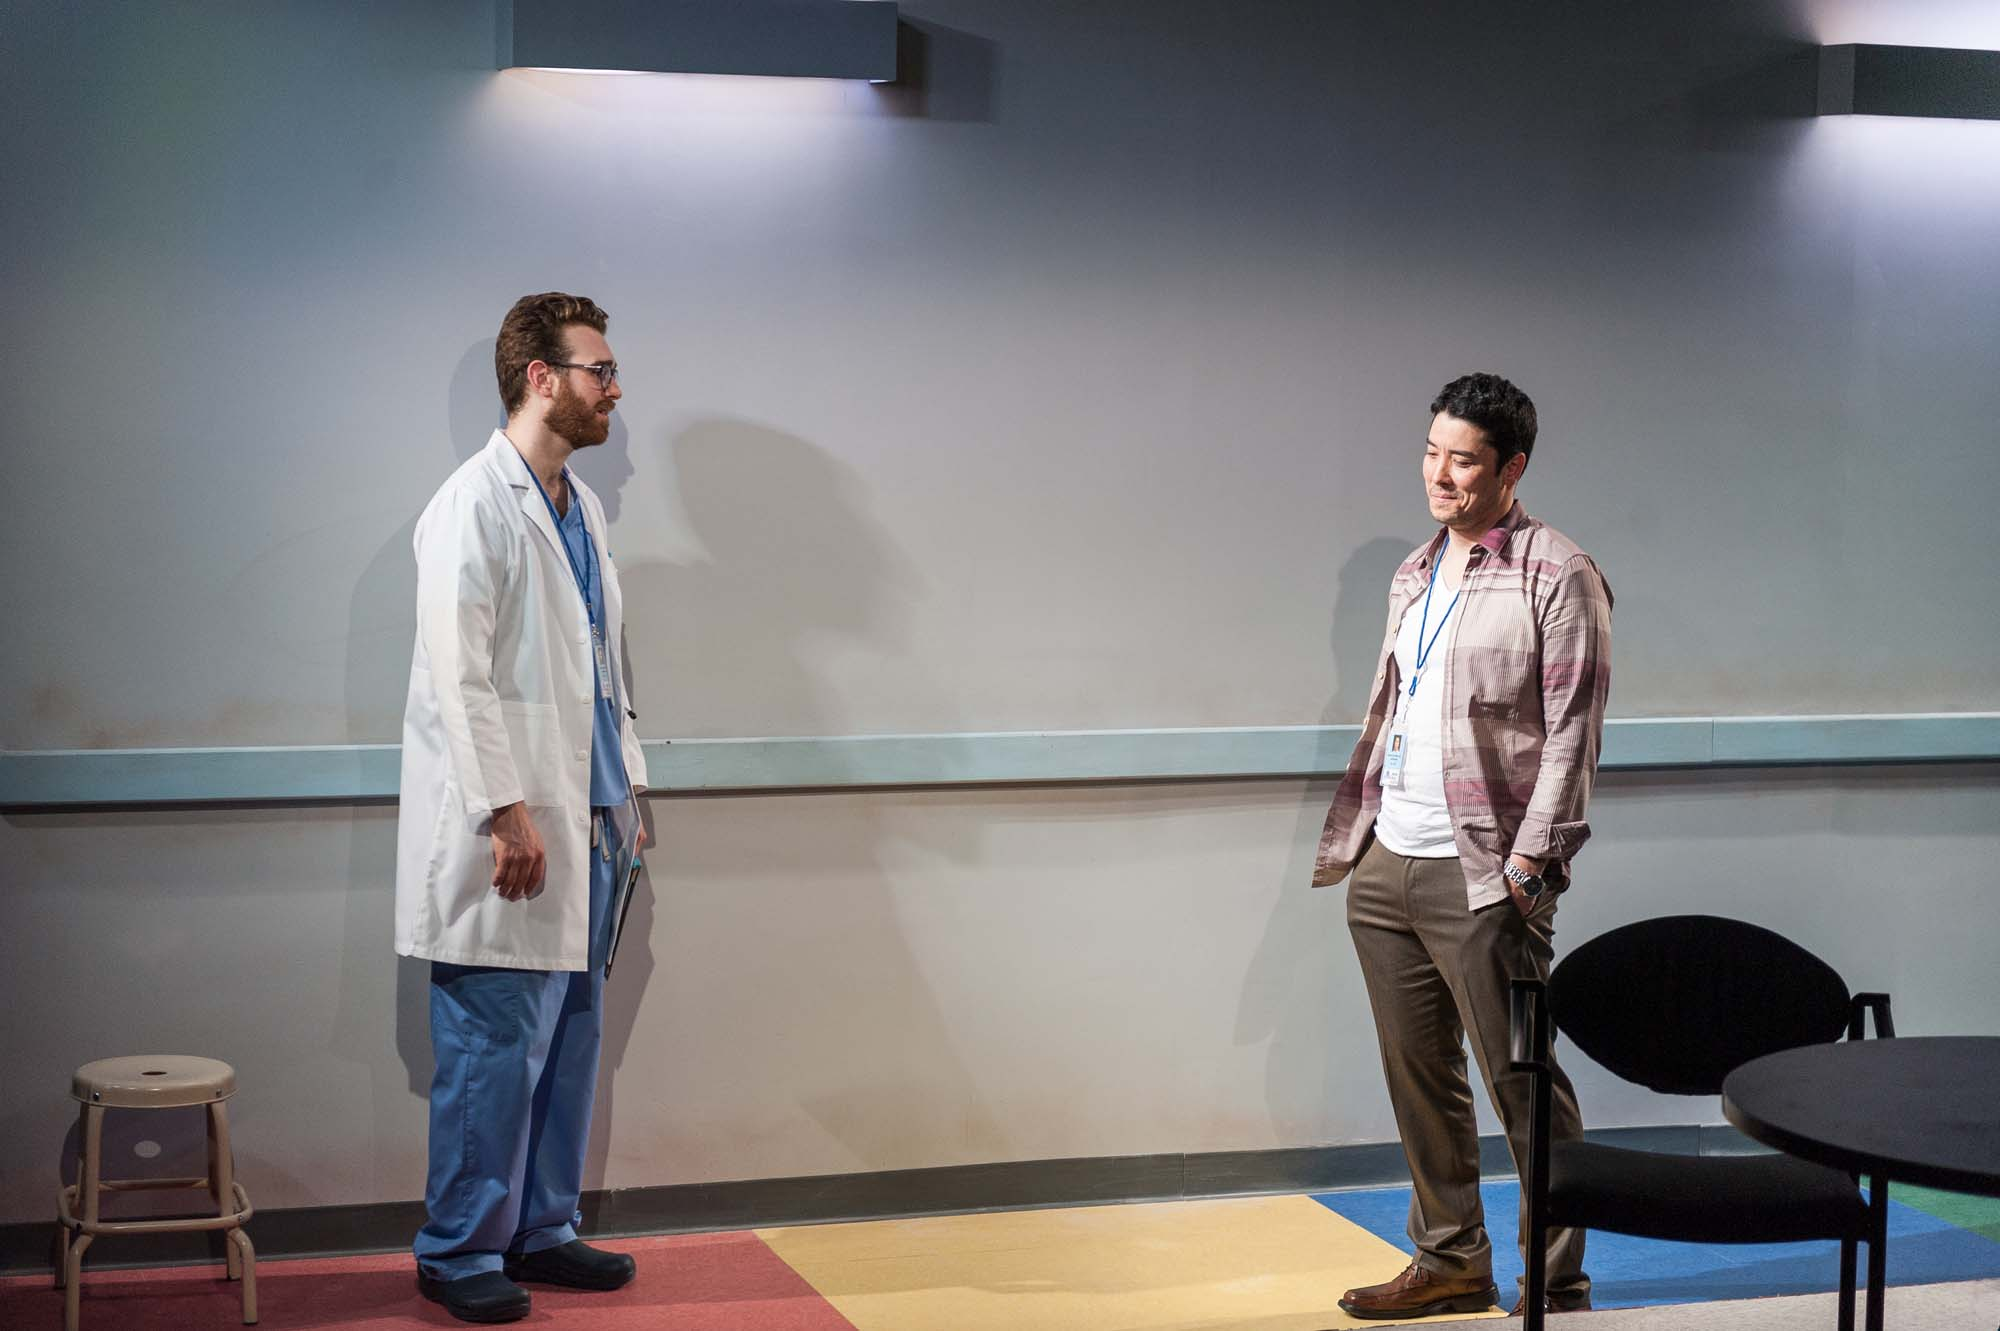 Rod confronts Henry in the Hospital hallway